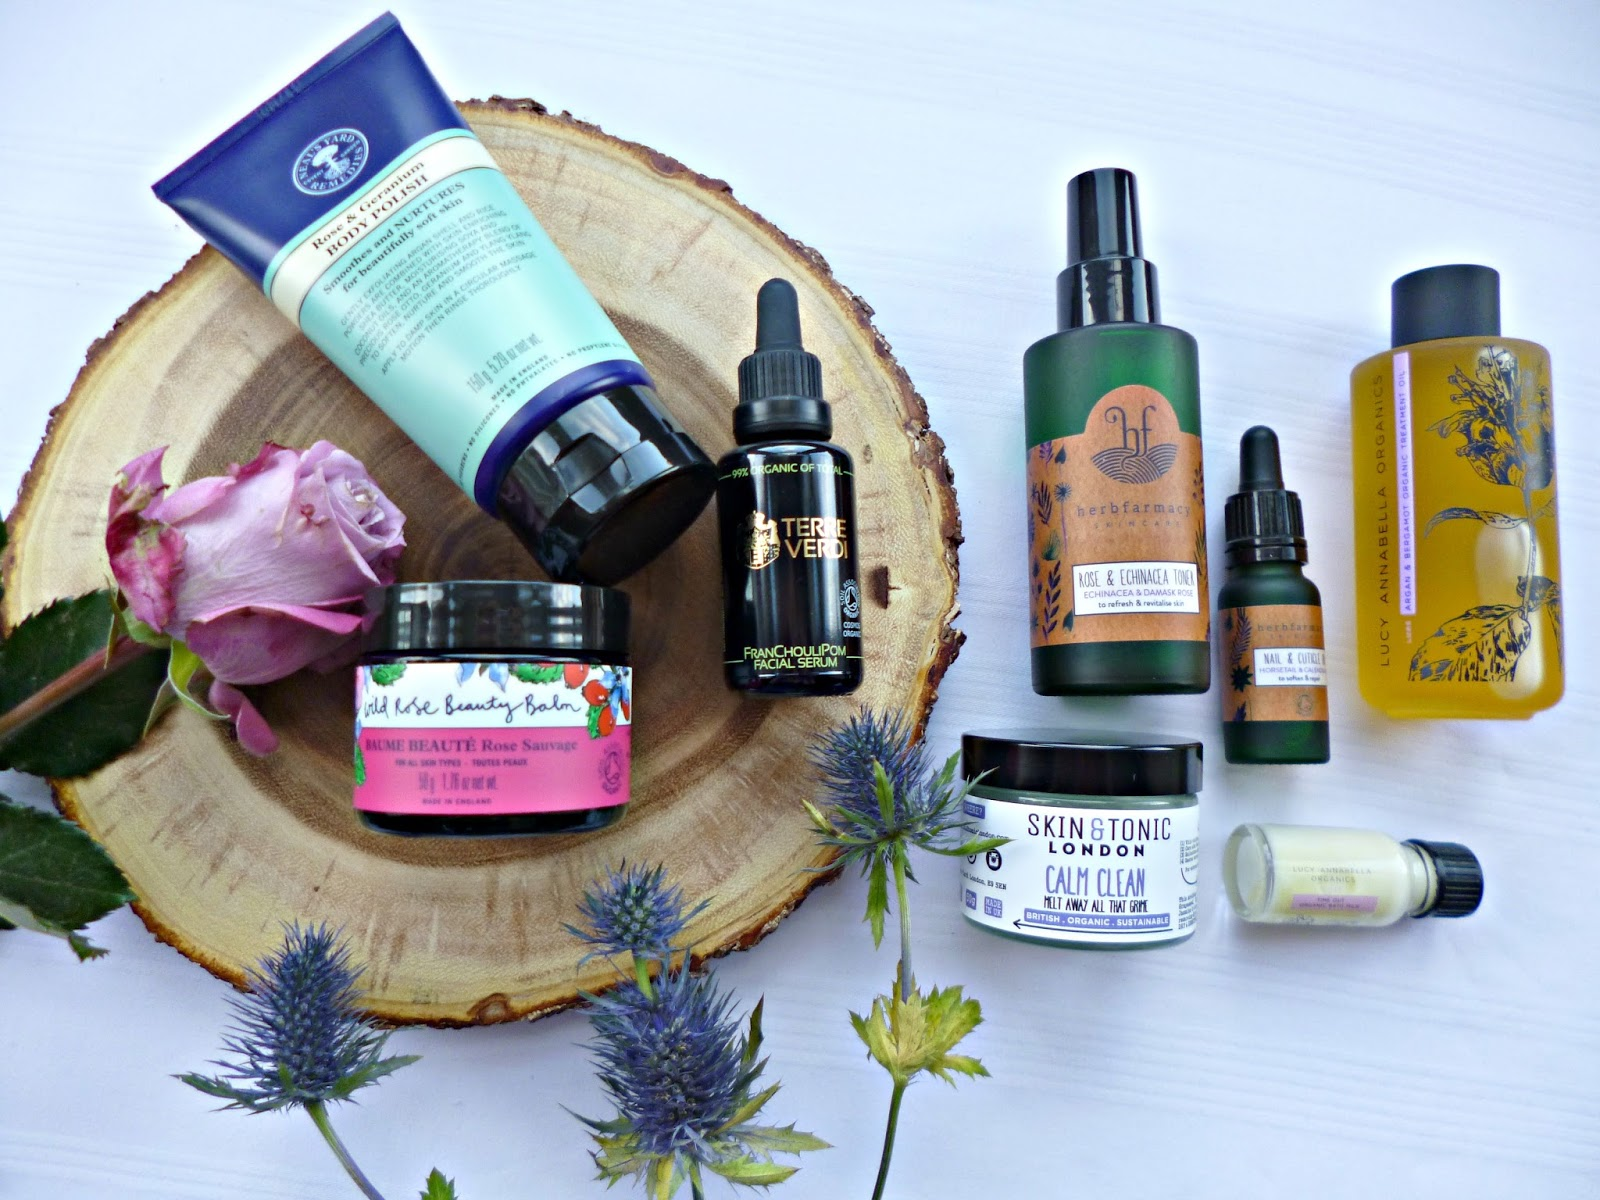 The Organic Beauty week Pamper session